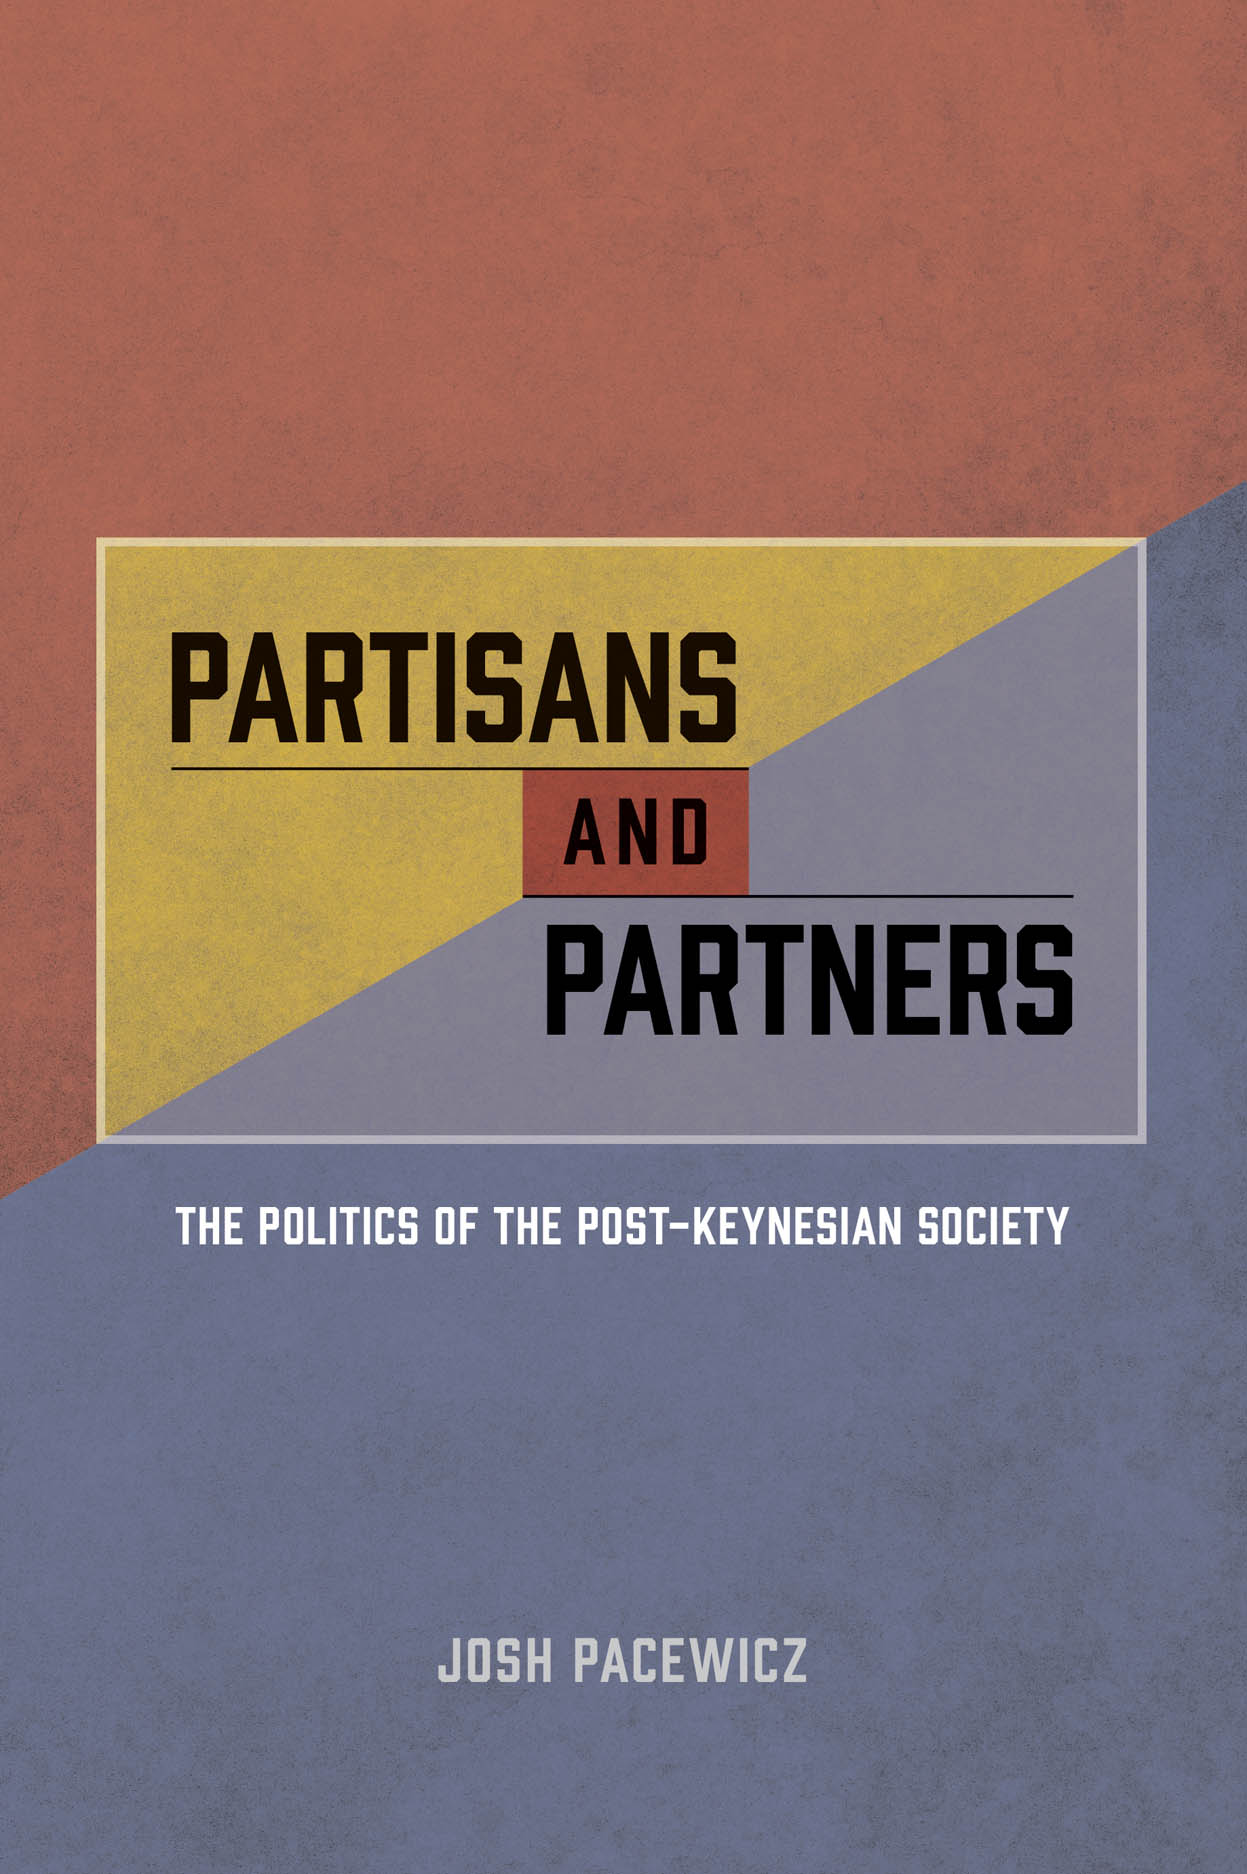 Partisans and Partners: The Politics of the Post-Keynesian Society